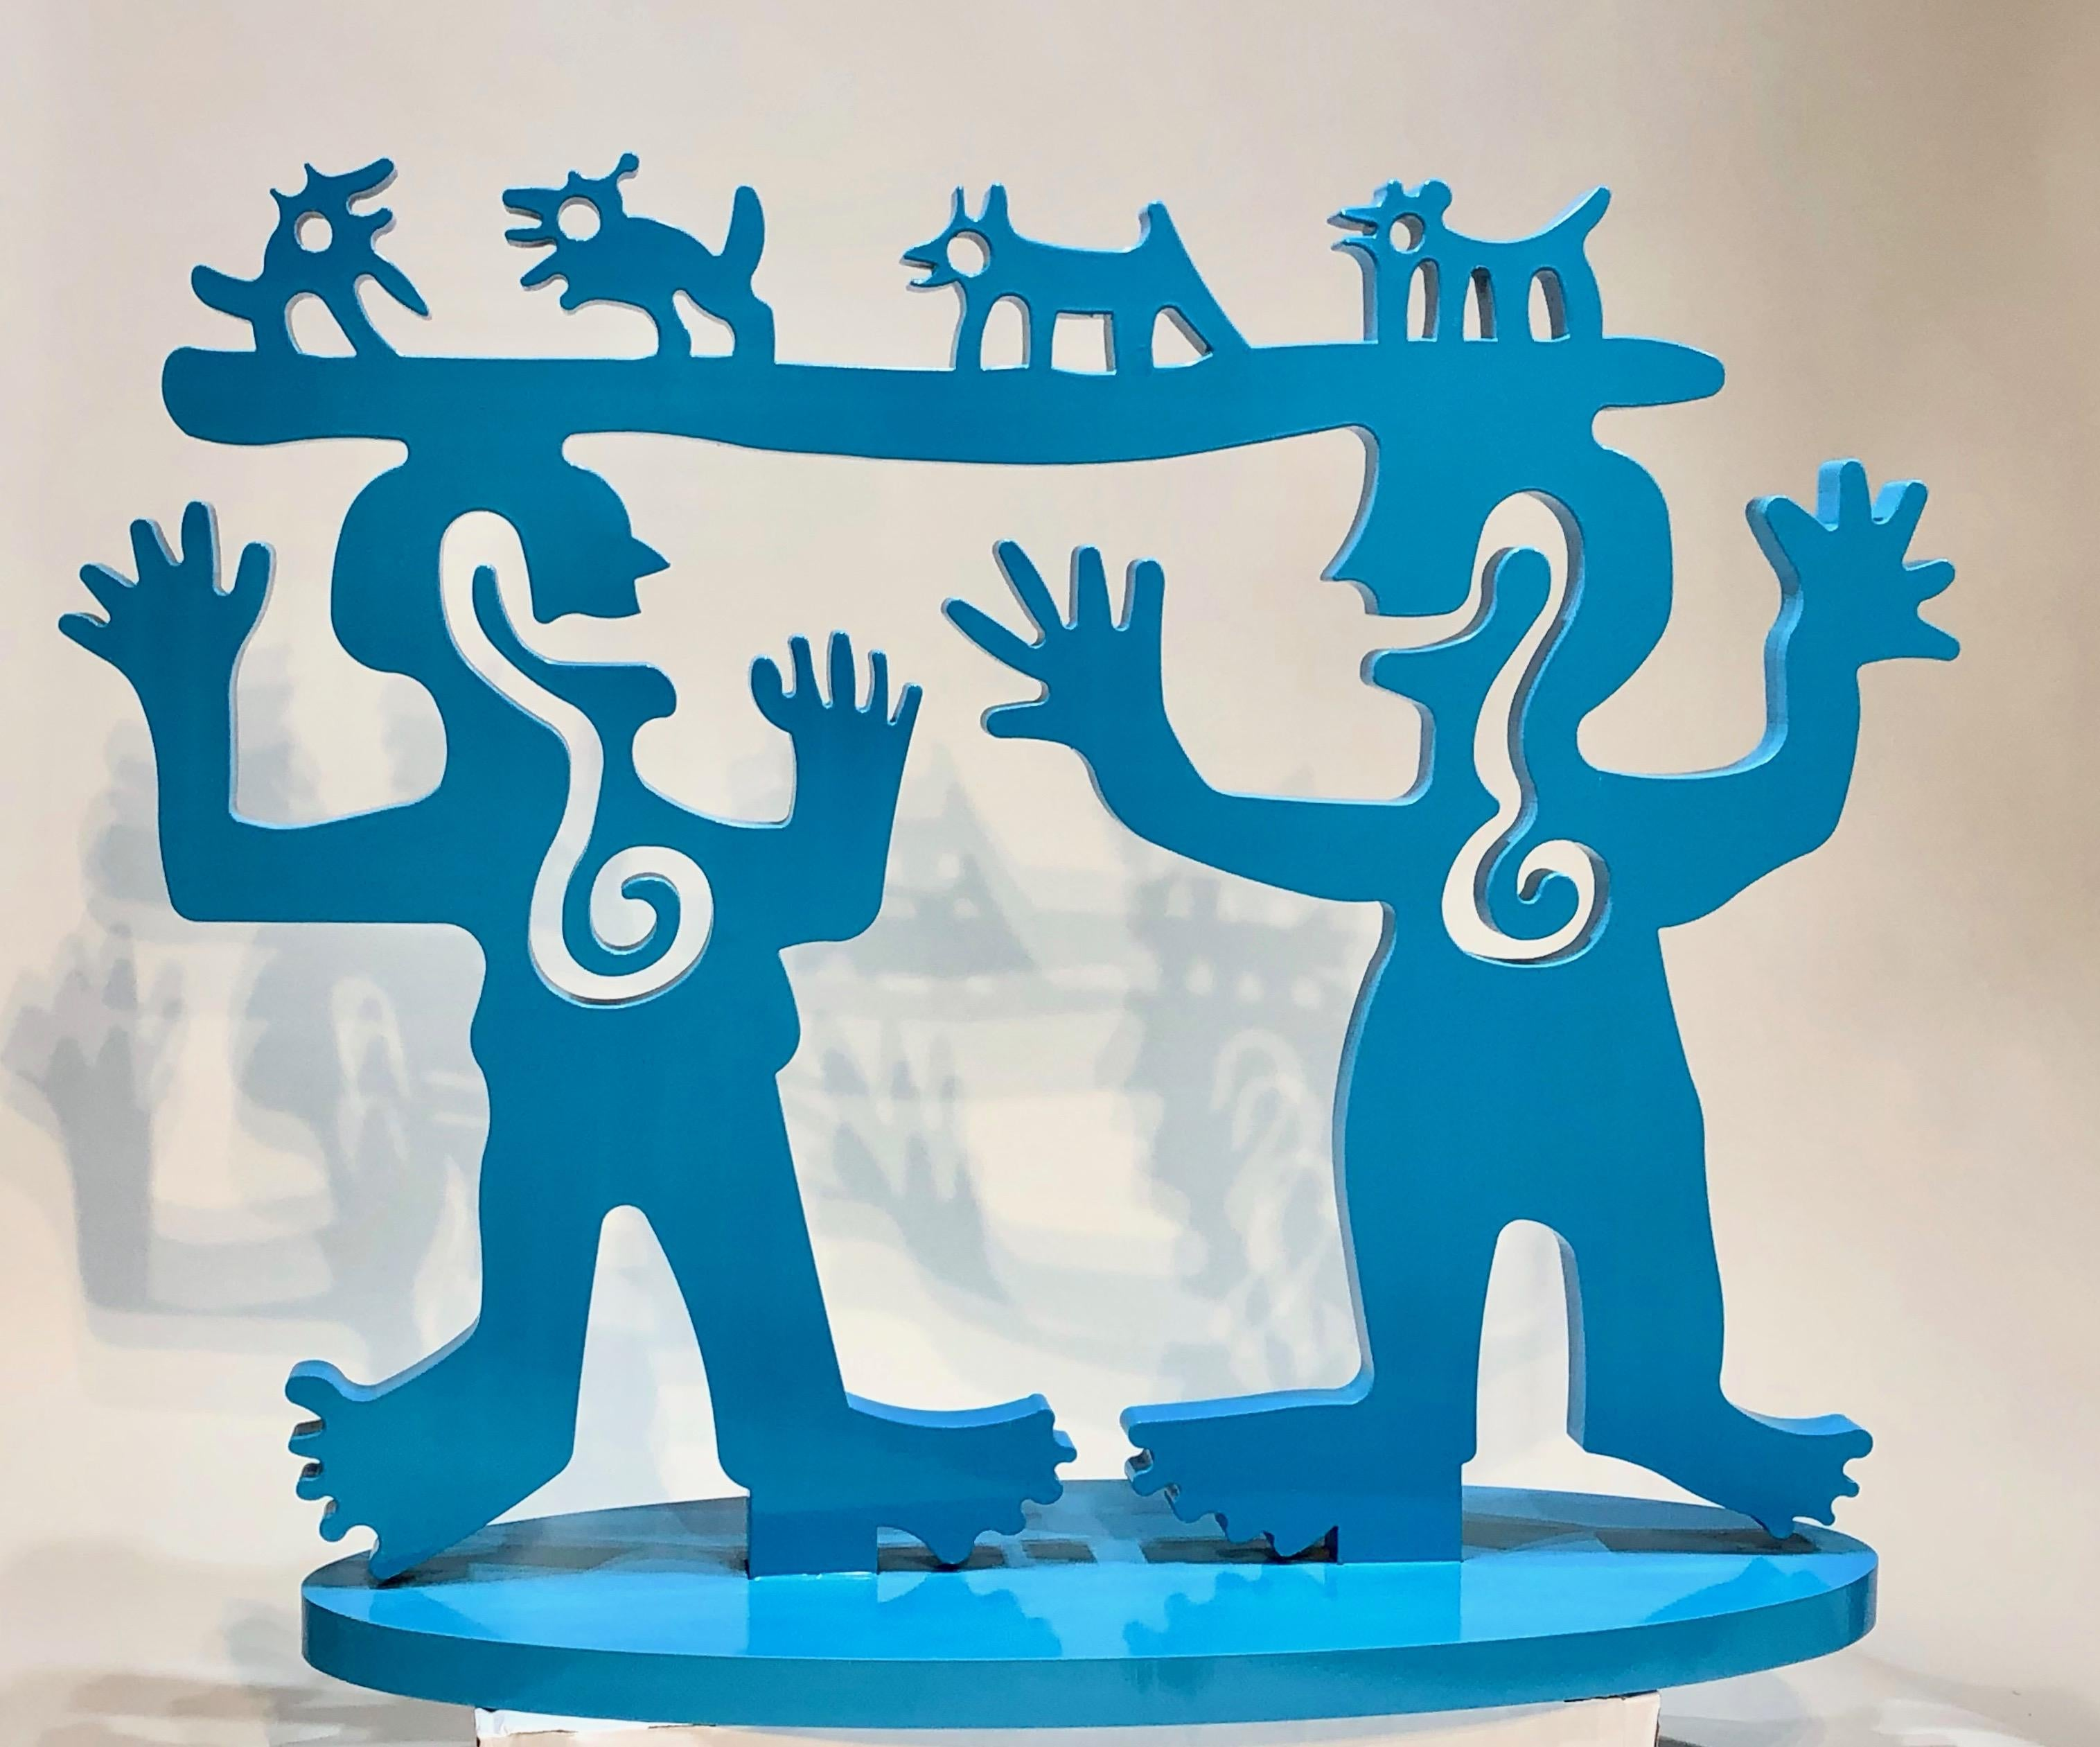 Two Minds Meeting sculpture by Melanie Yazzie, blue aluminum people animals